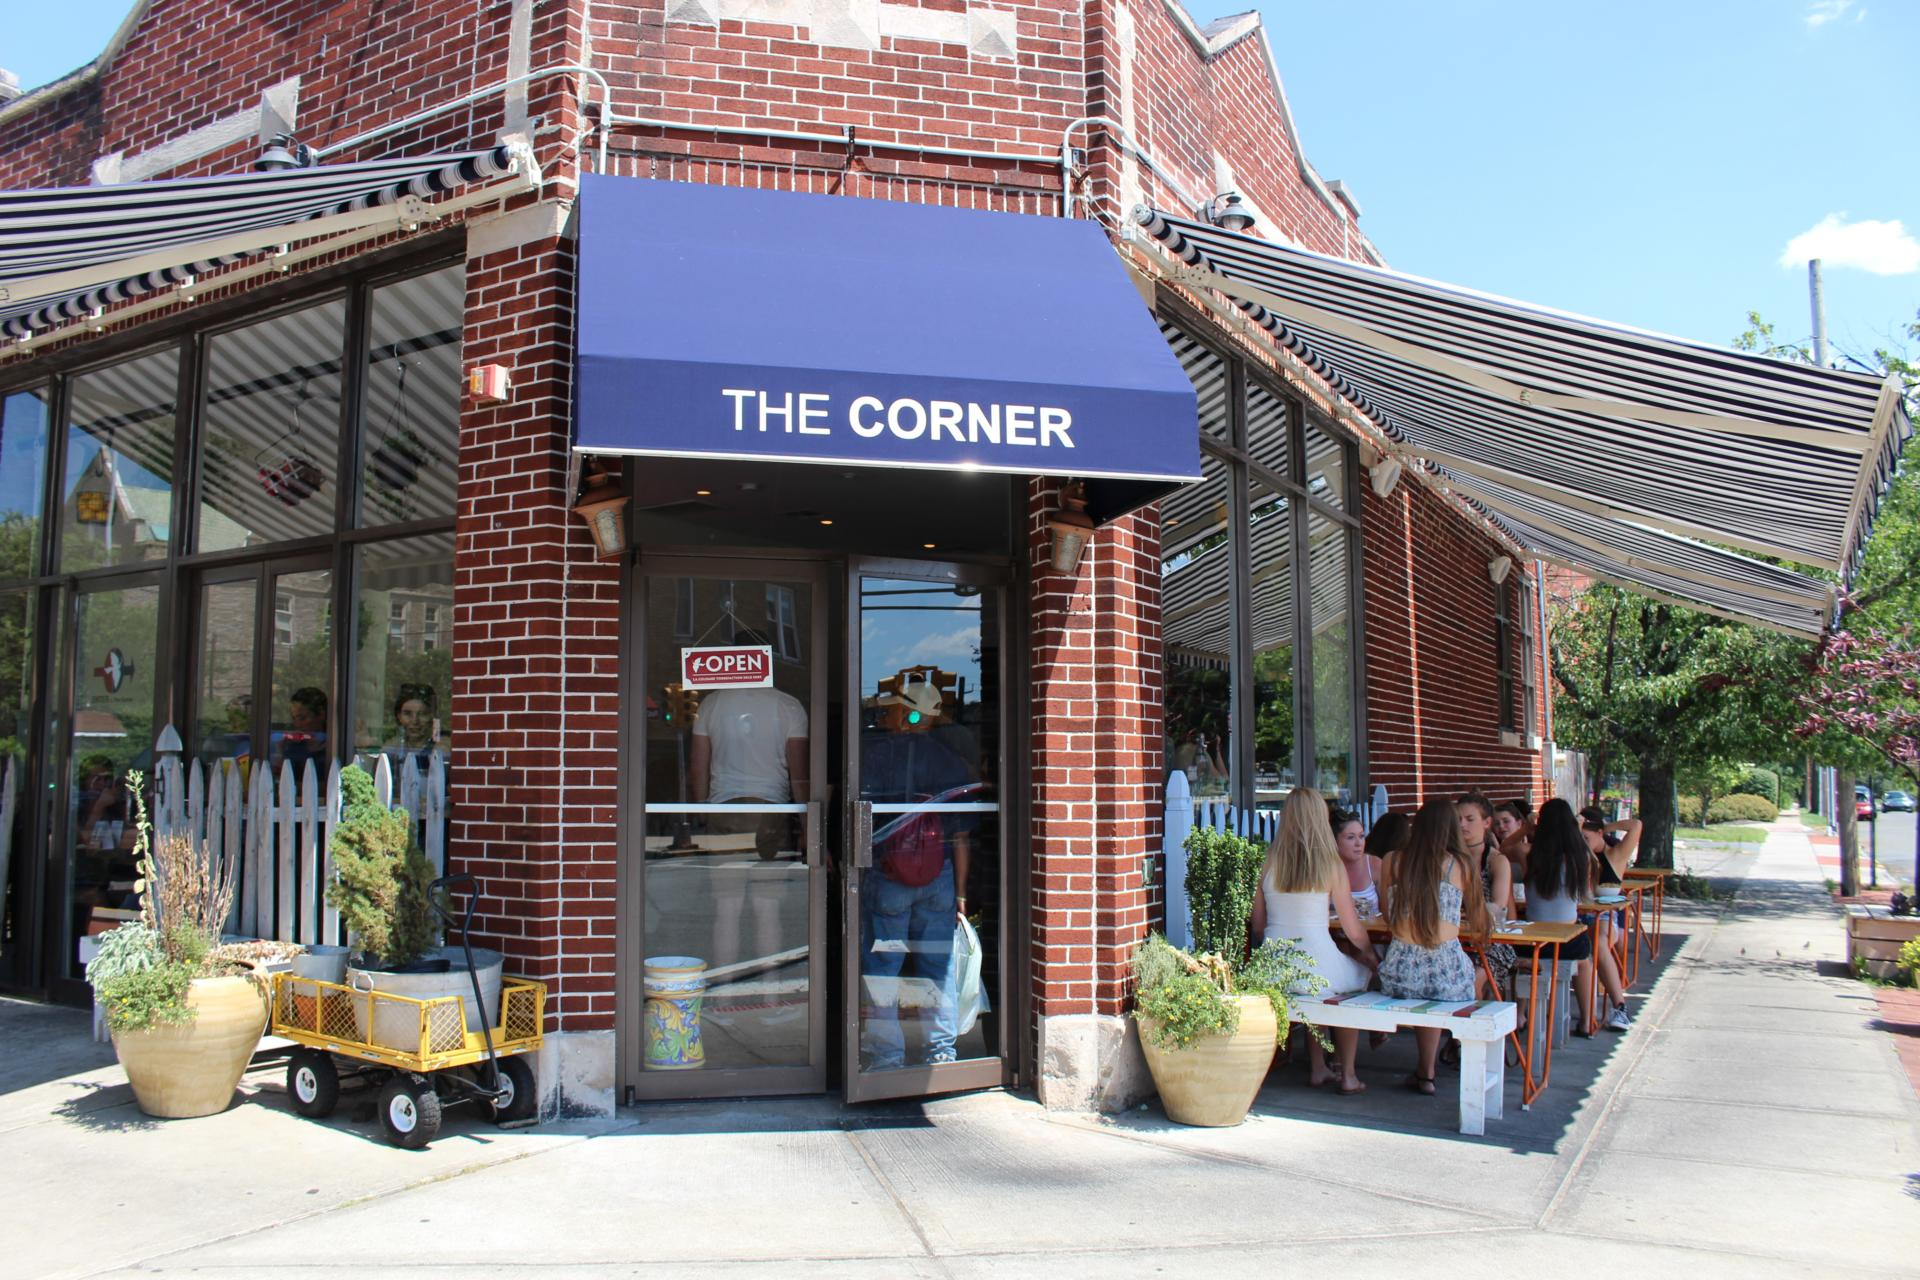 LOCAL: Sunday Brunch at The Corner